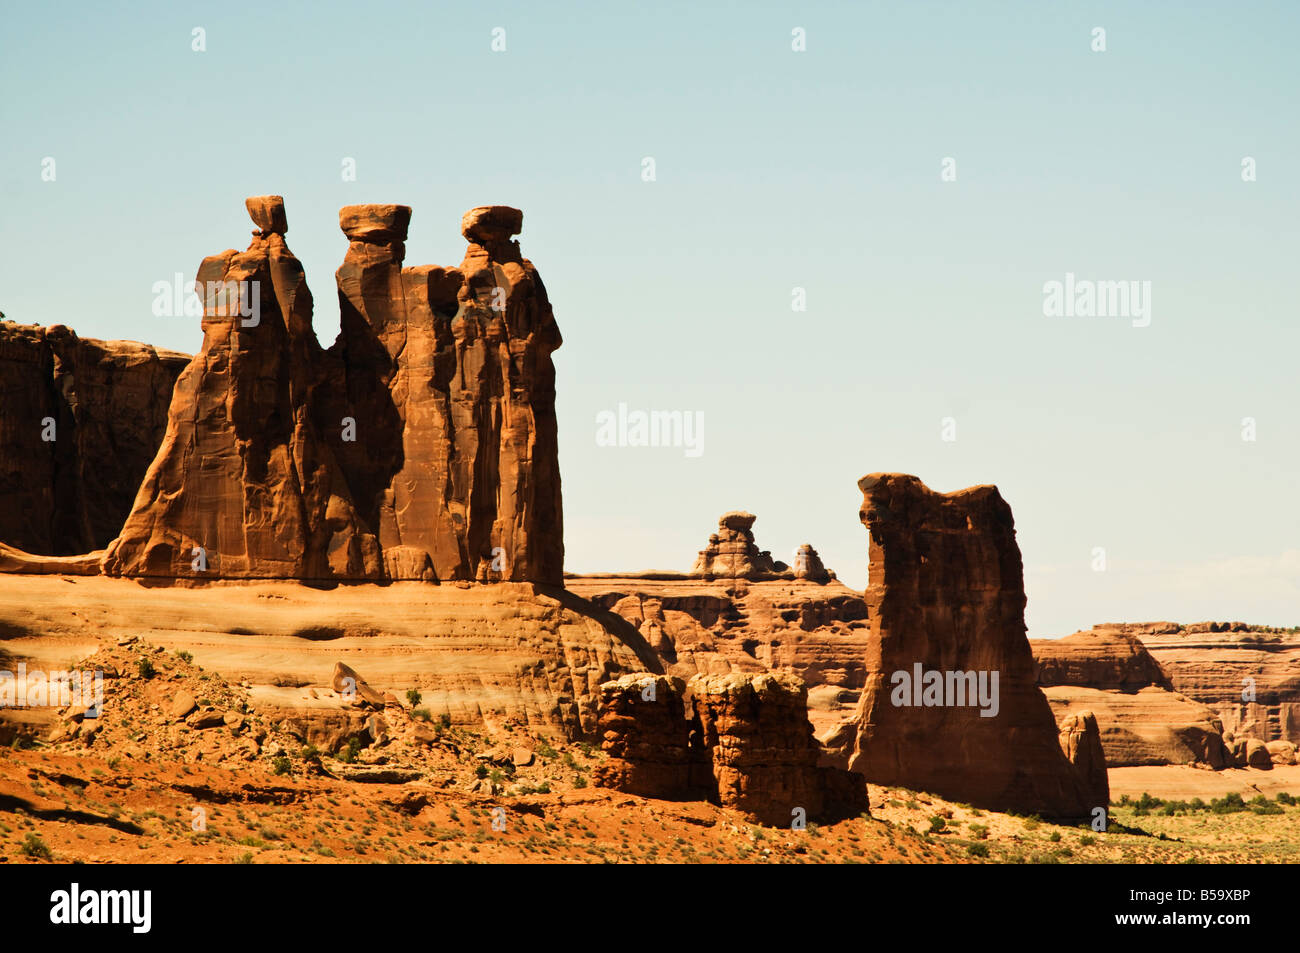 three gossips arches national park - Stock Image